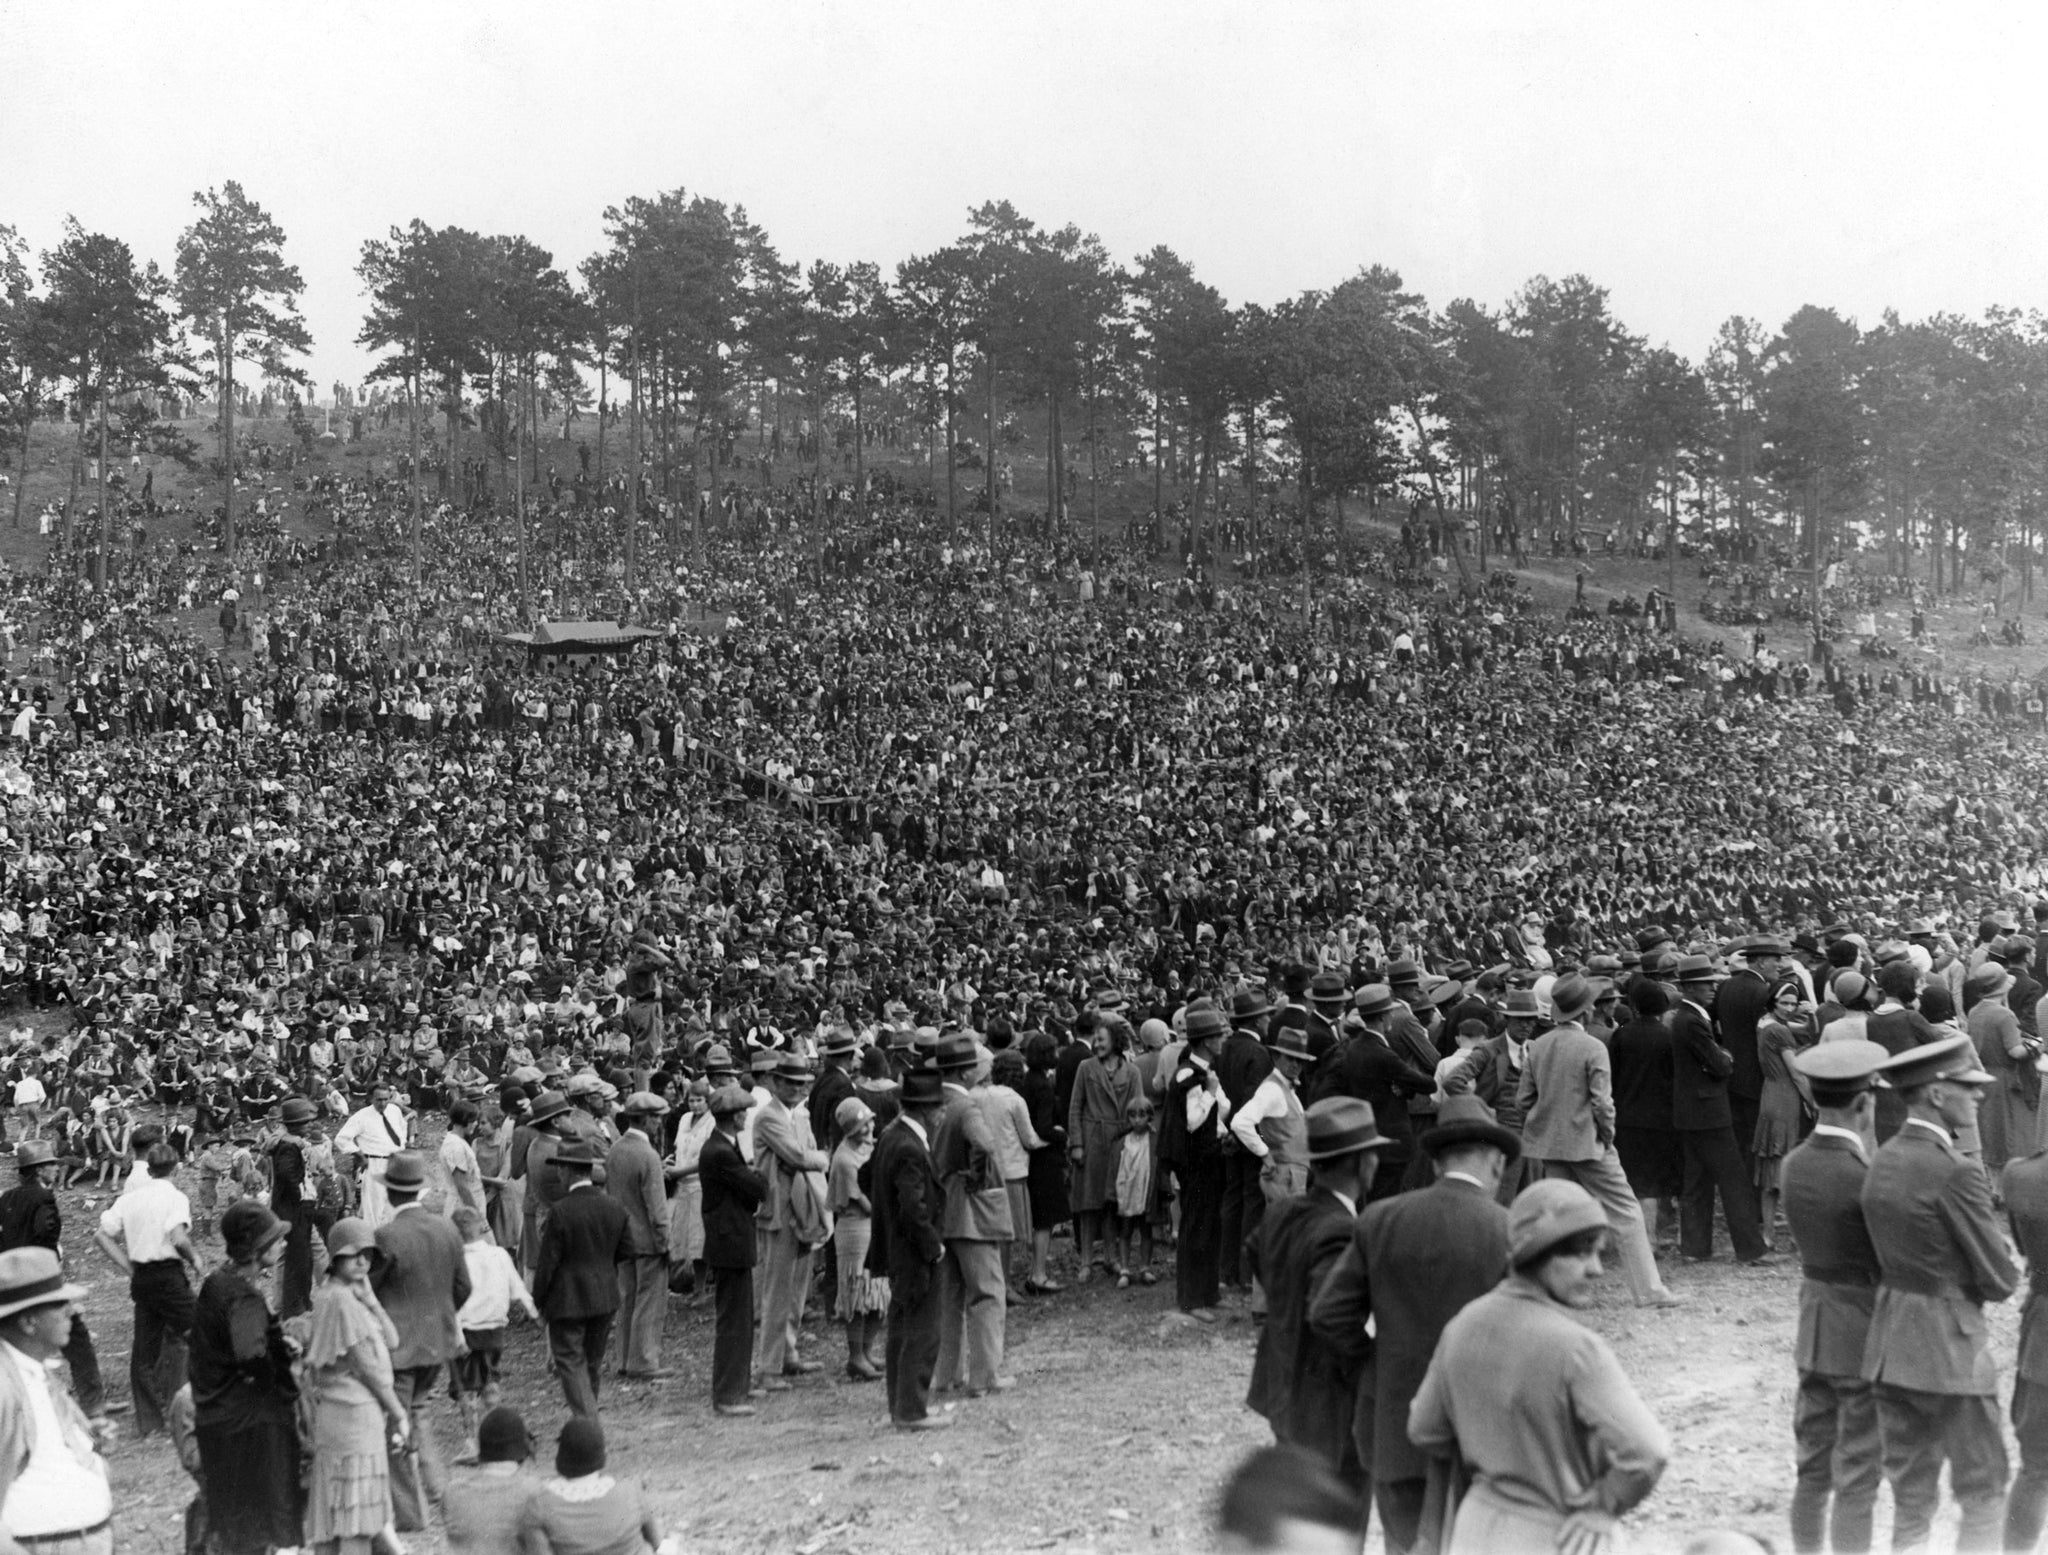 Part of the crowd of 75,000 people gathered to see President Herbert Hoover speak at the 150th anniversary celebration of the Battle of Kings Mountain in 1930. -- Courtesy of Loretta Cozart